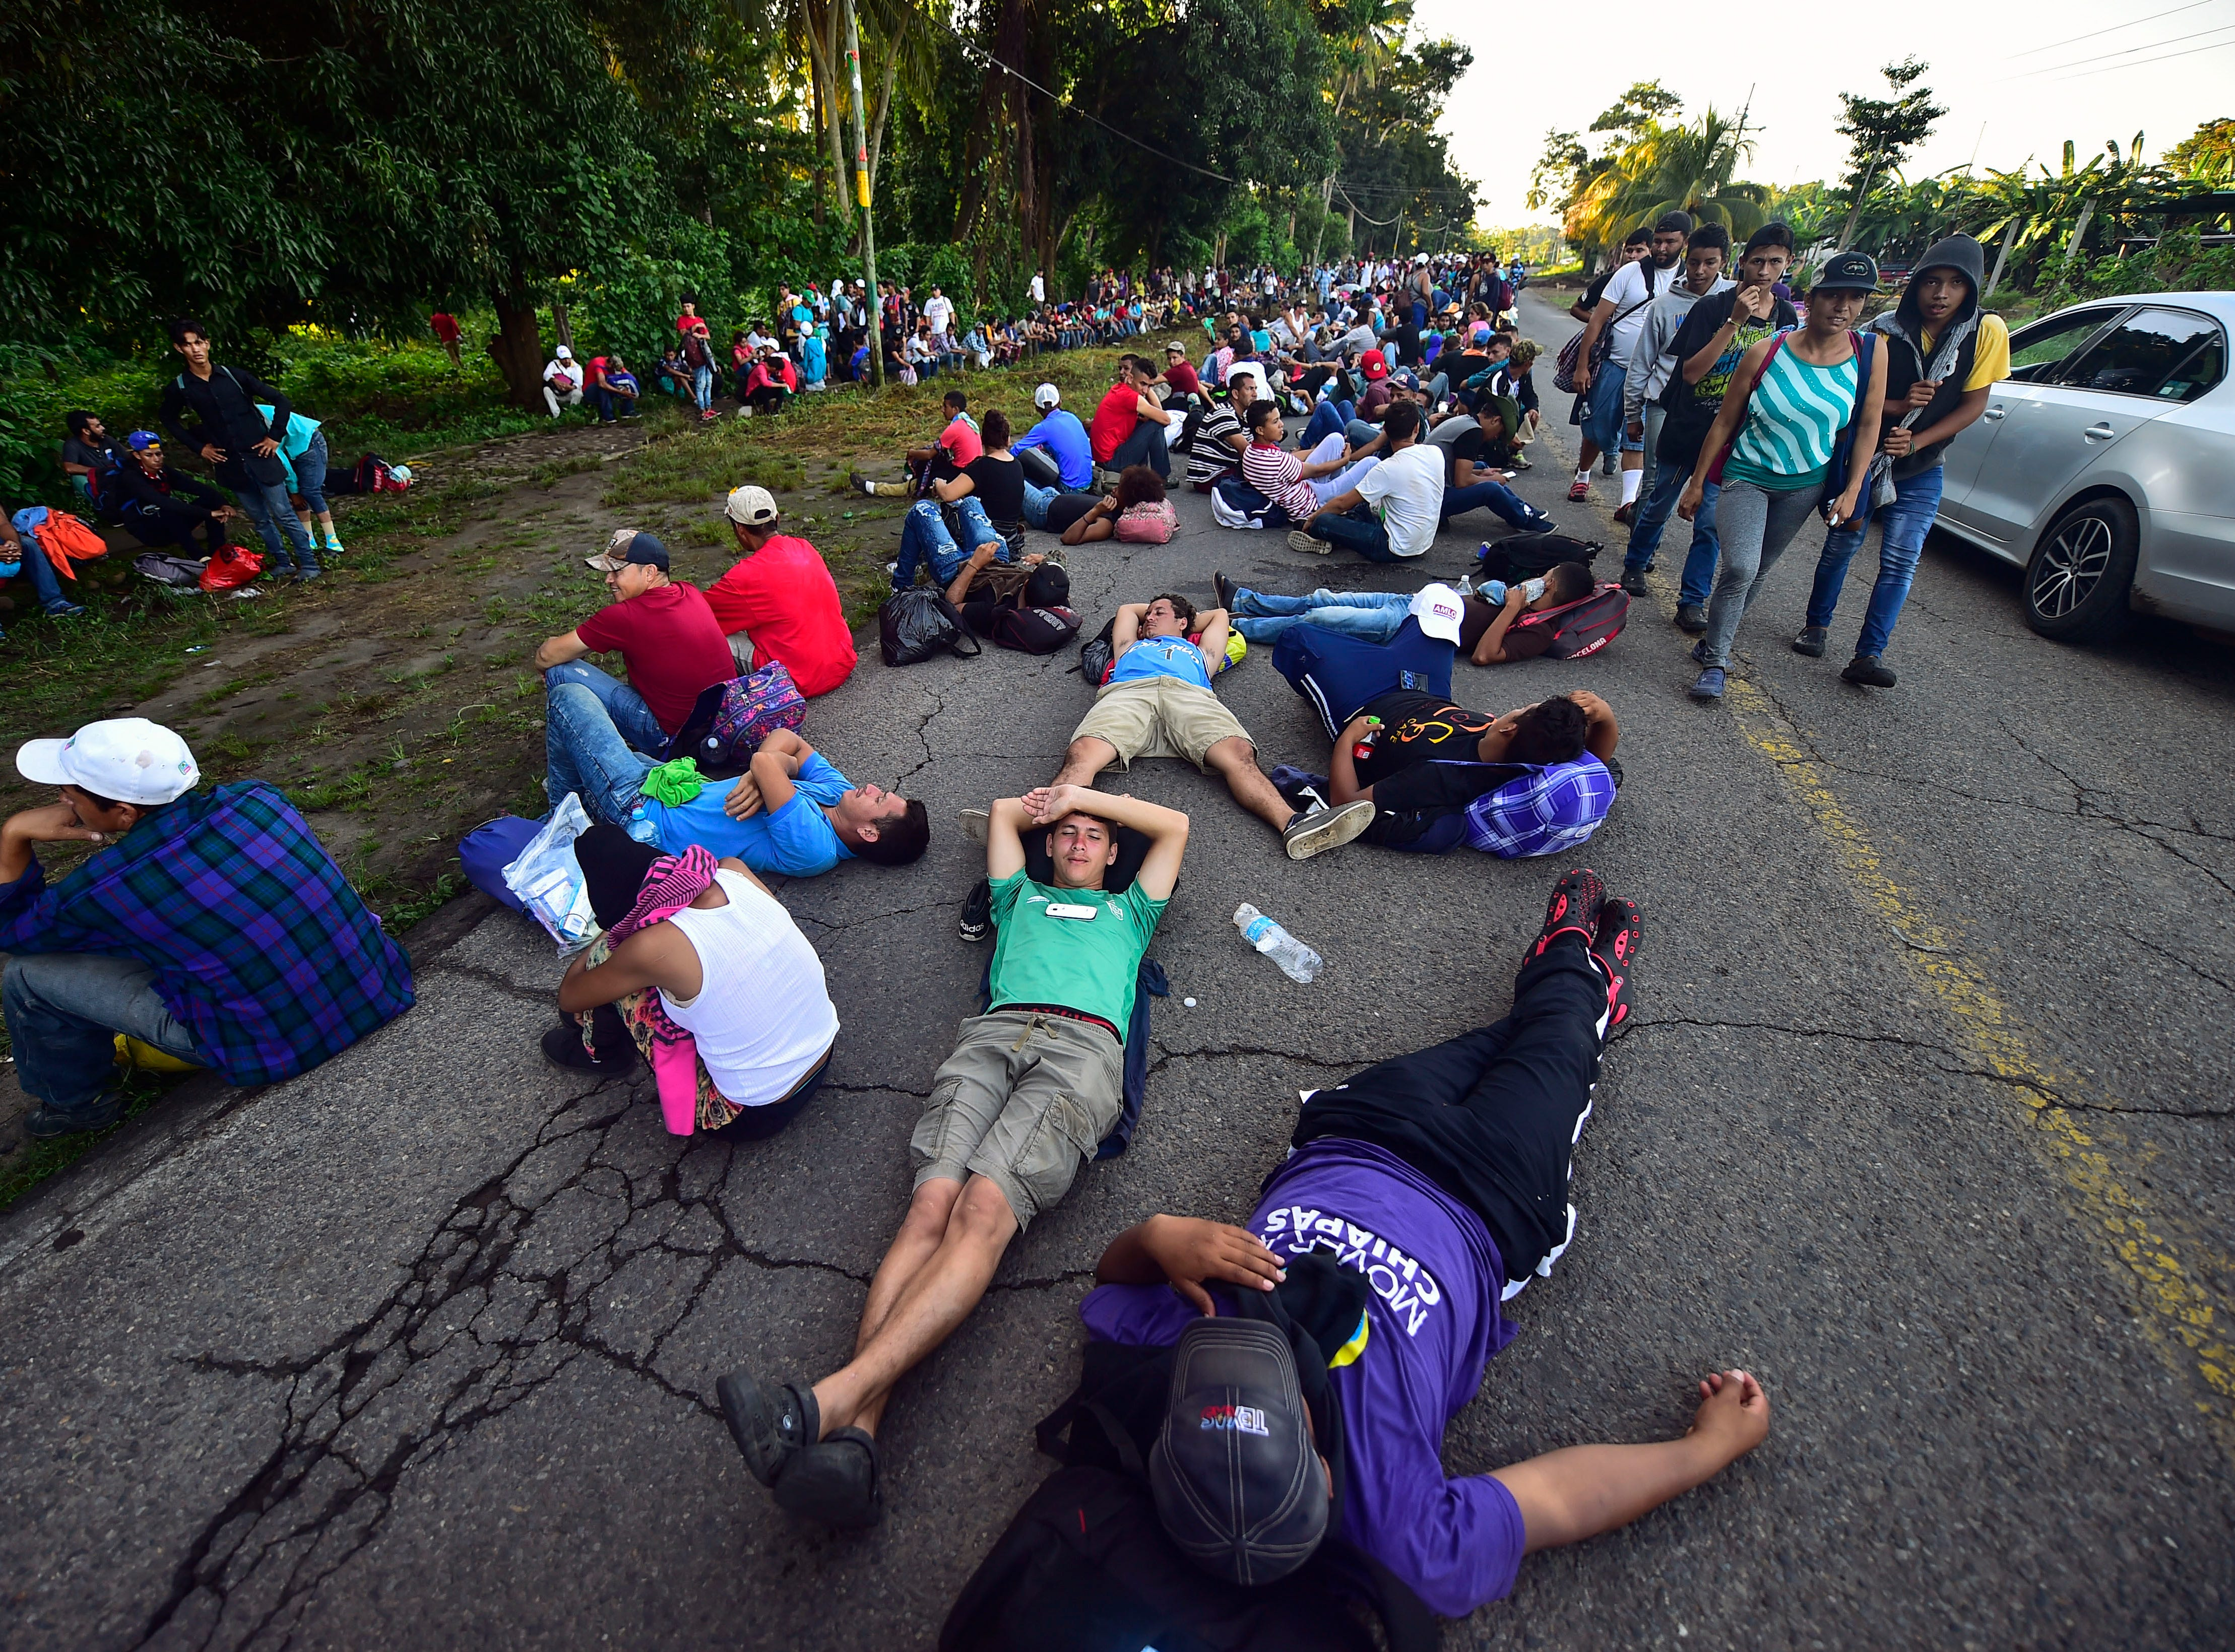 Honduran migrants heading in a caravan to the US, rest alongside the route, in Metapa, Chiapas state, Mexico on October 22, 2018. - President Donald Trump on Monday called the migrant caravan heading toward the US-Mexico border a national emergency, saying he has alerted the US border patrol and military.